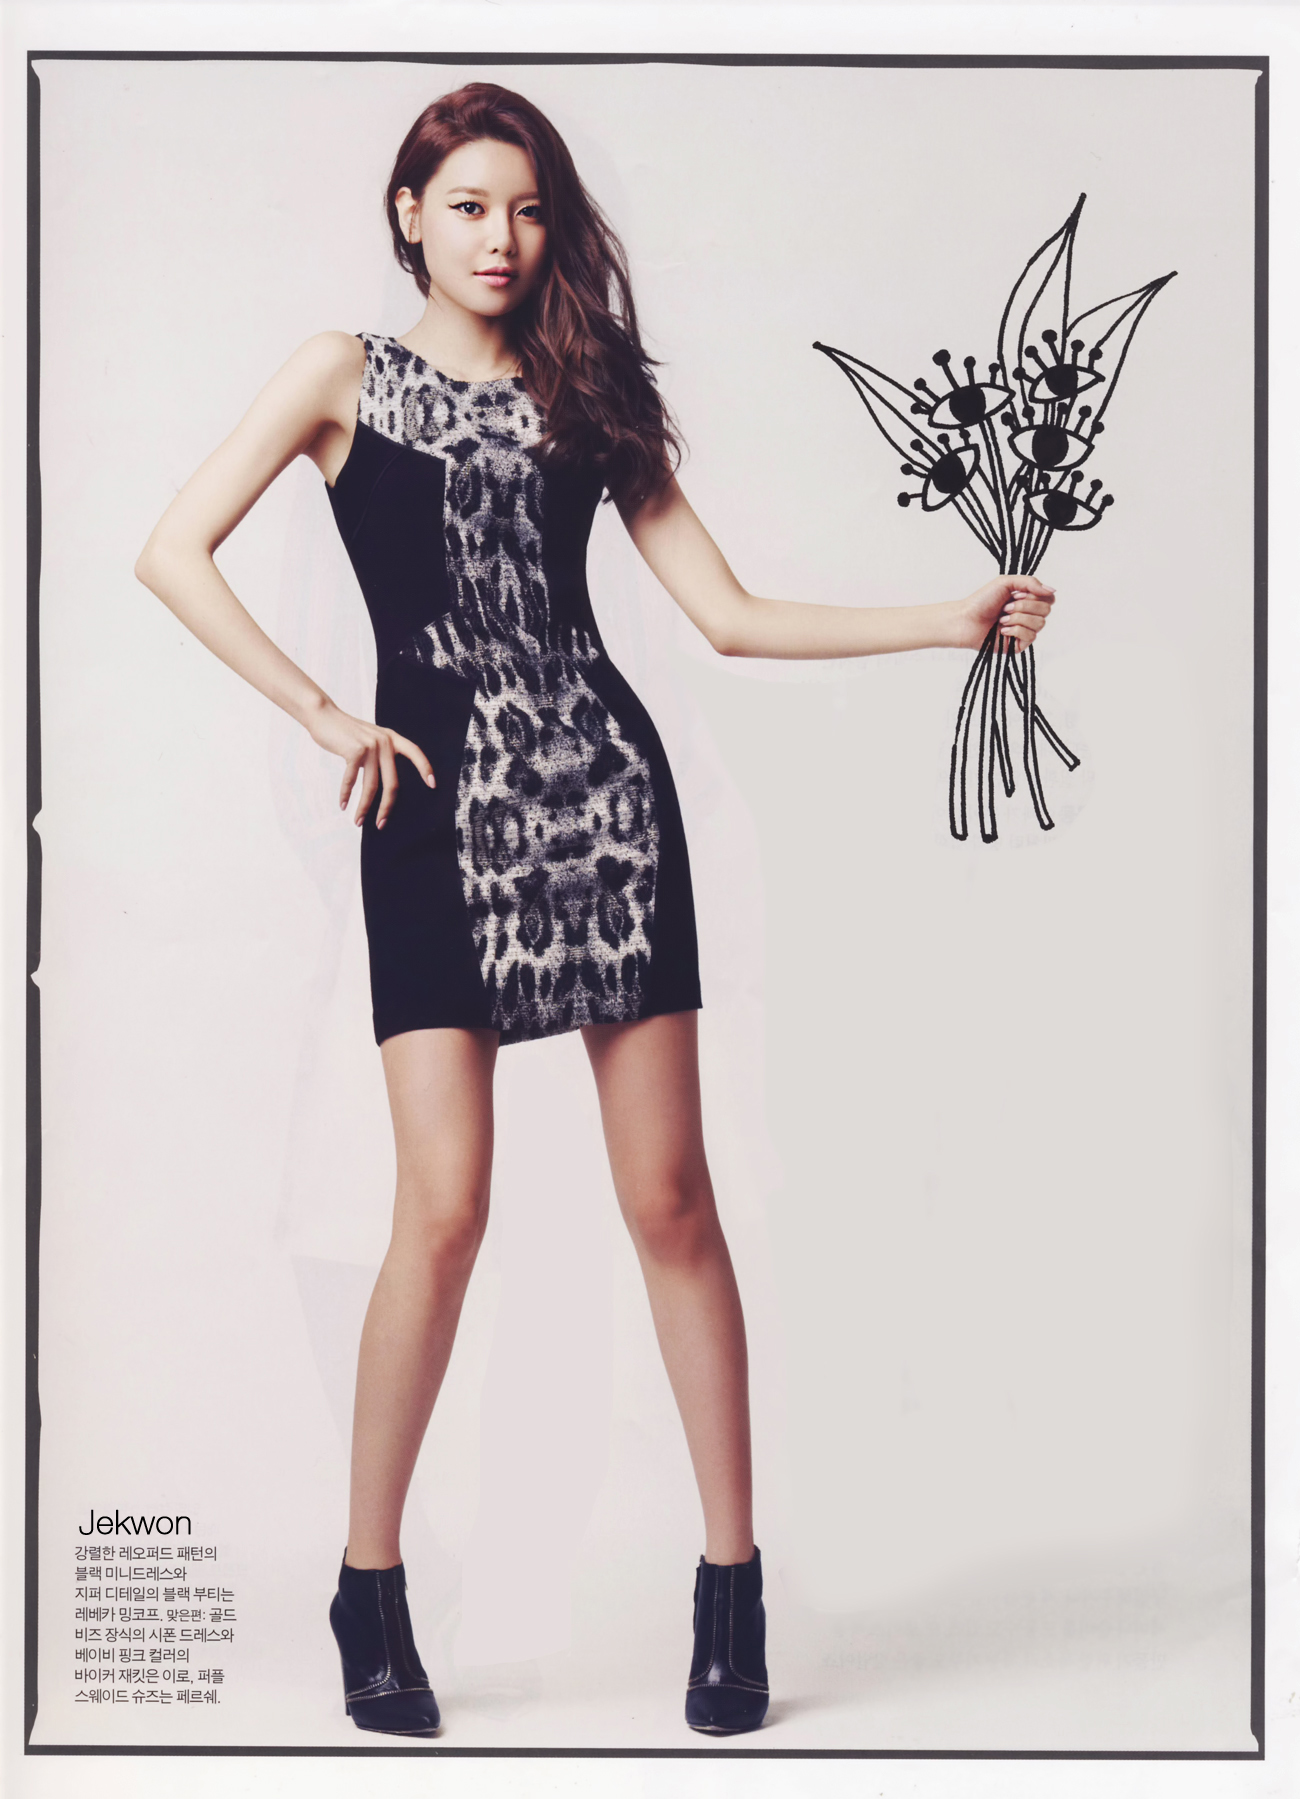 Yoona Instyle Magazine Sooyoung Snsd Instyle Magazine March